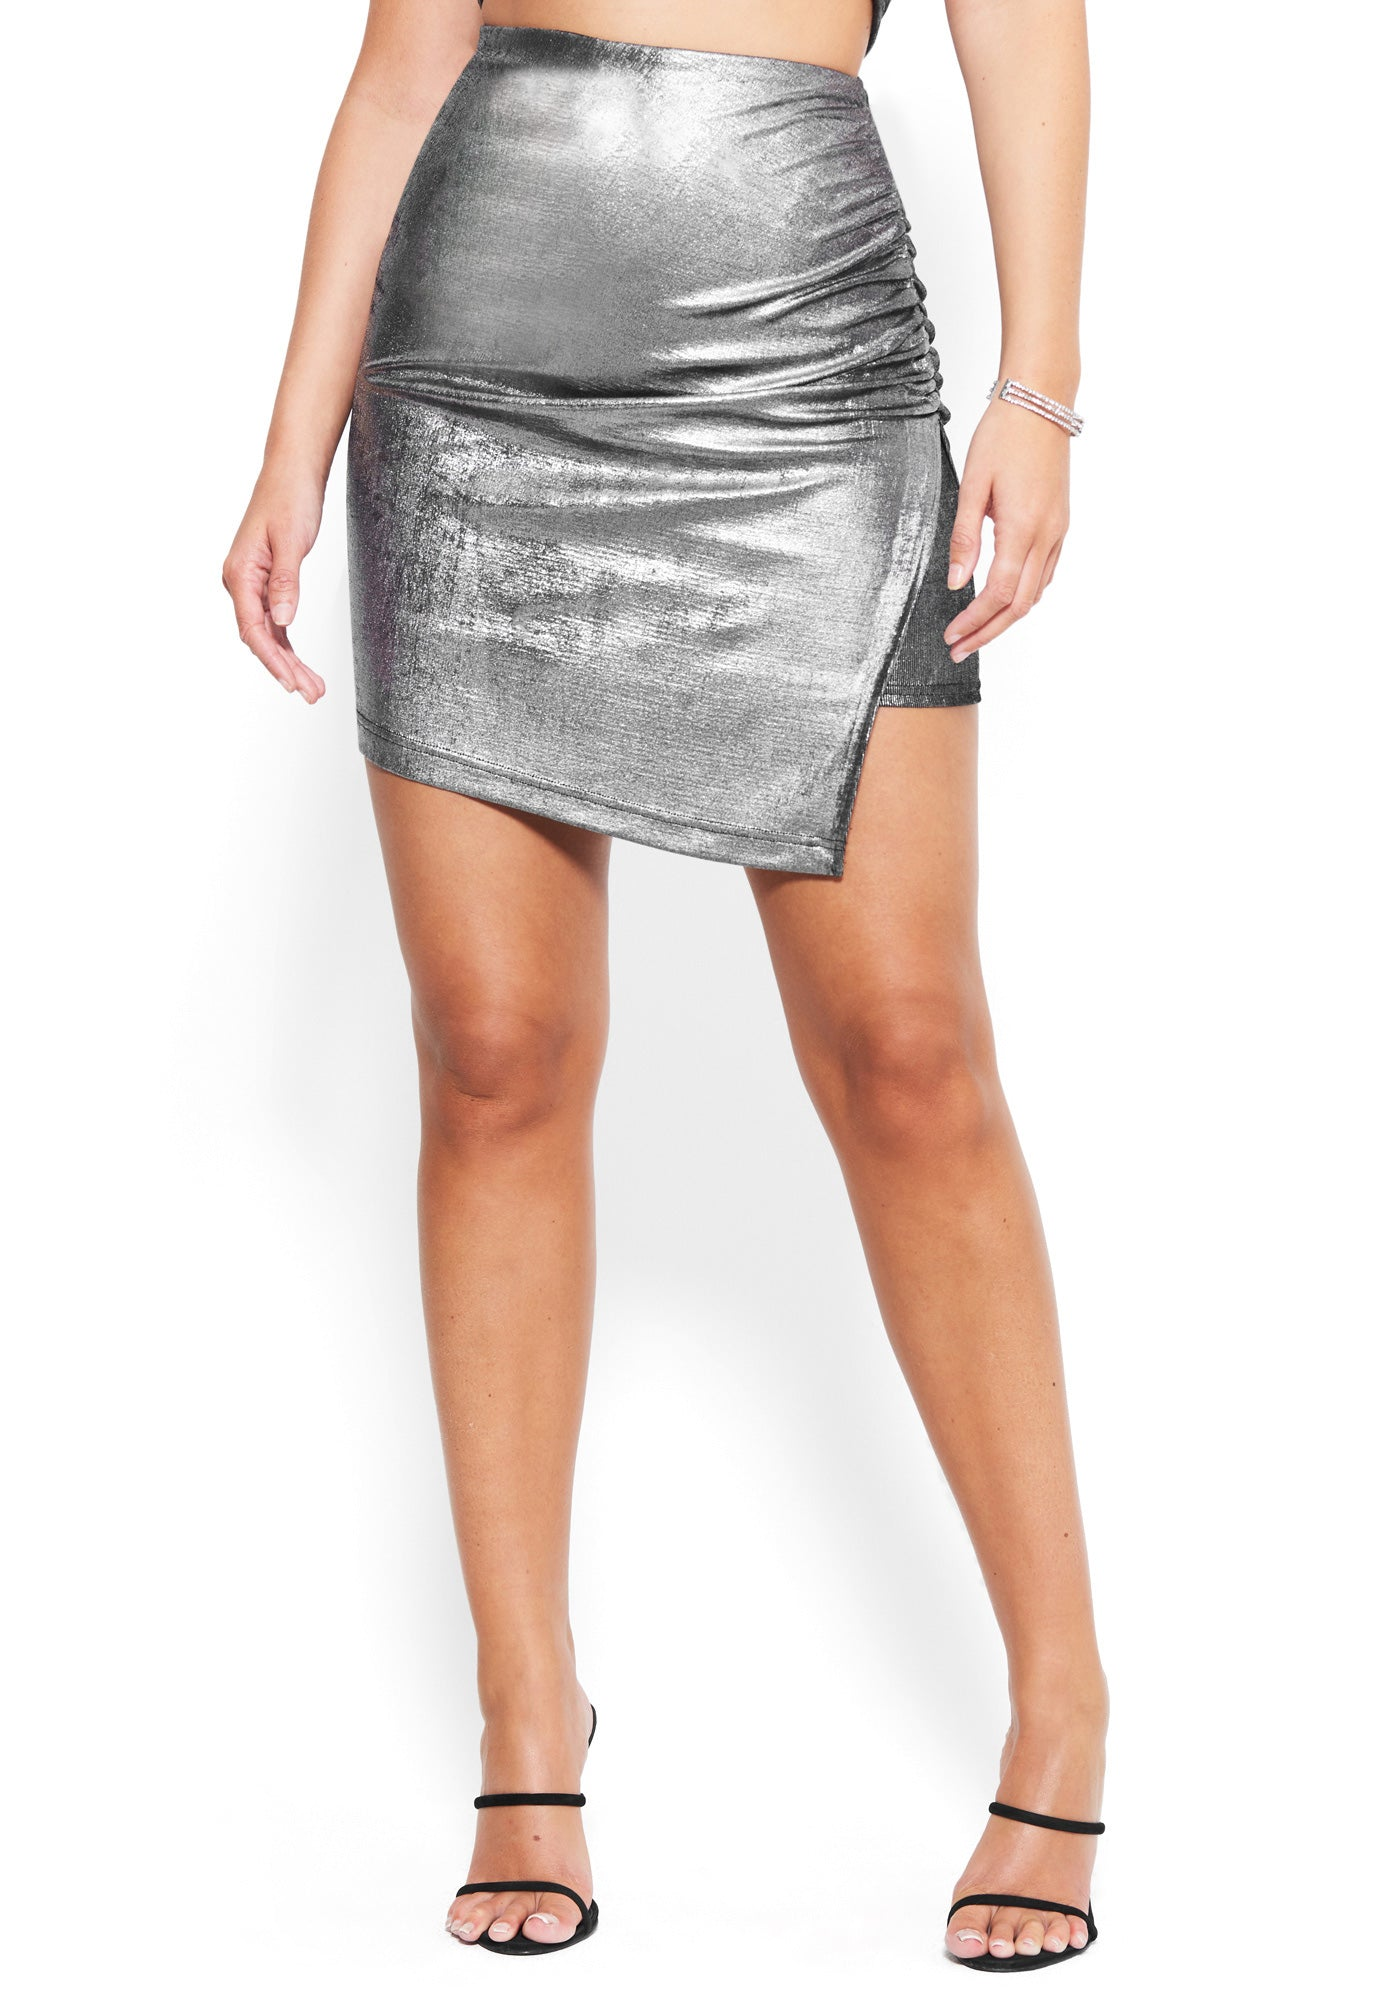 Bebe Women's Metallic Silky Knit Slit Mini Skirt, Size XXS in SILVER Metal/Spandex